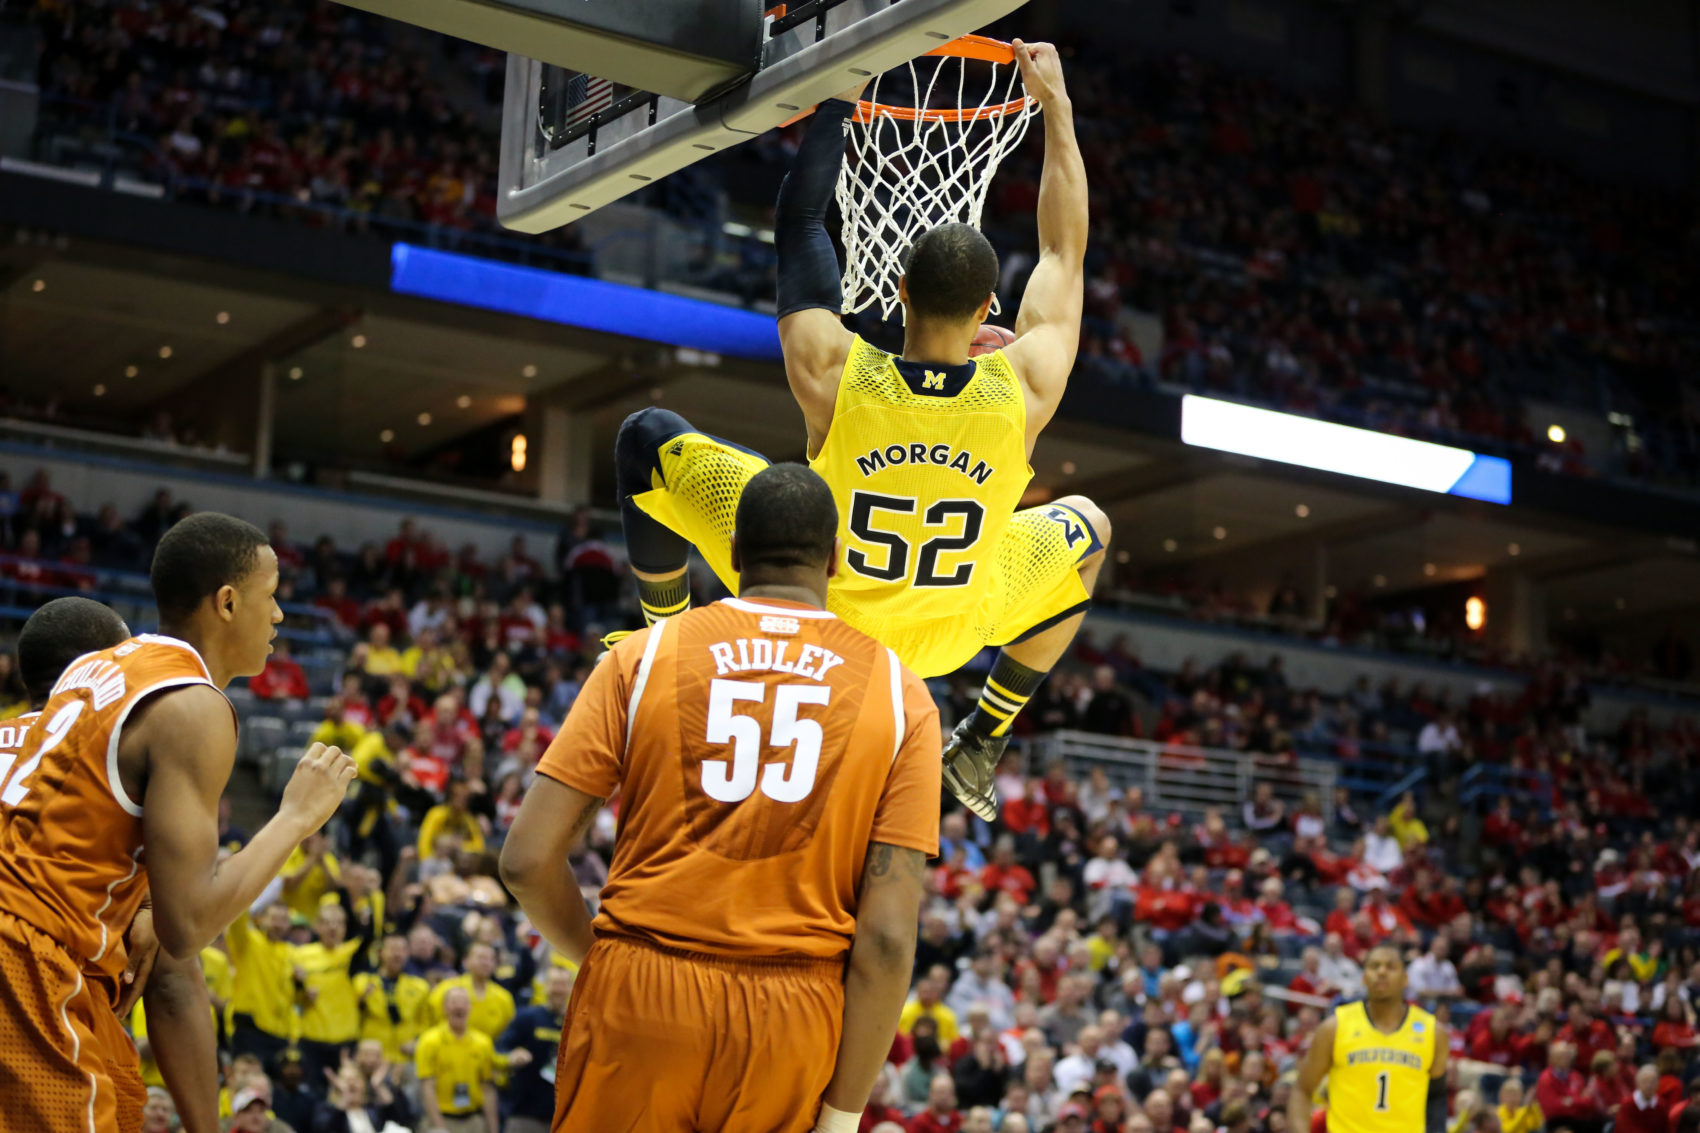 Michigan 79, Texas 65-18